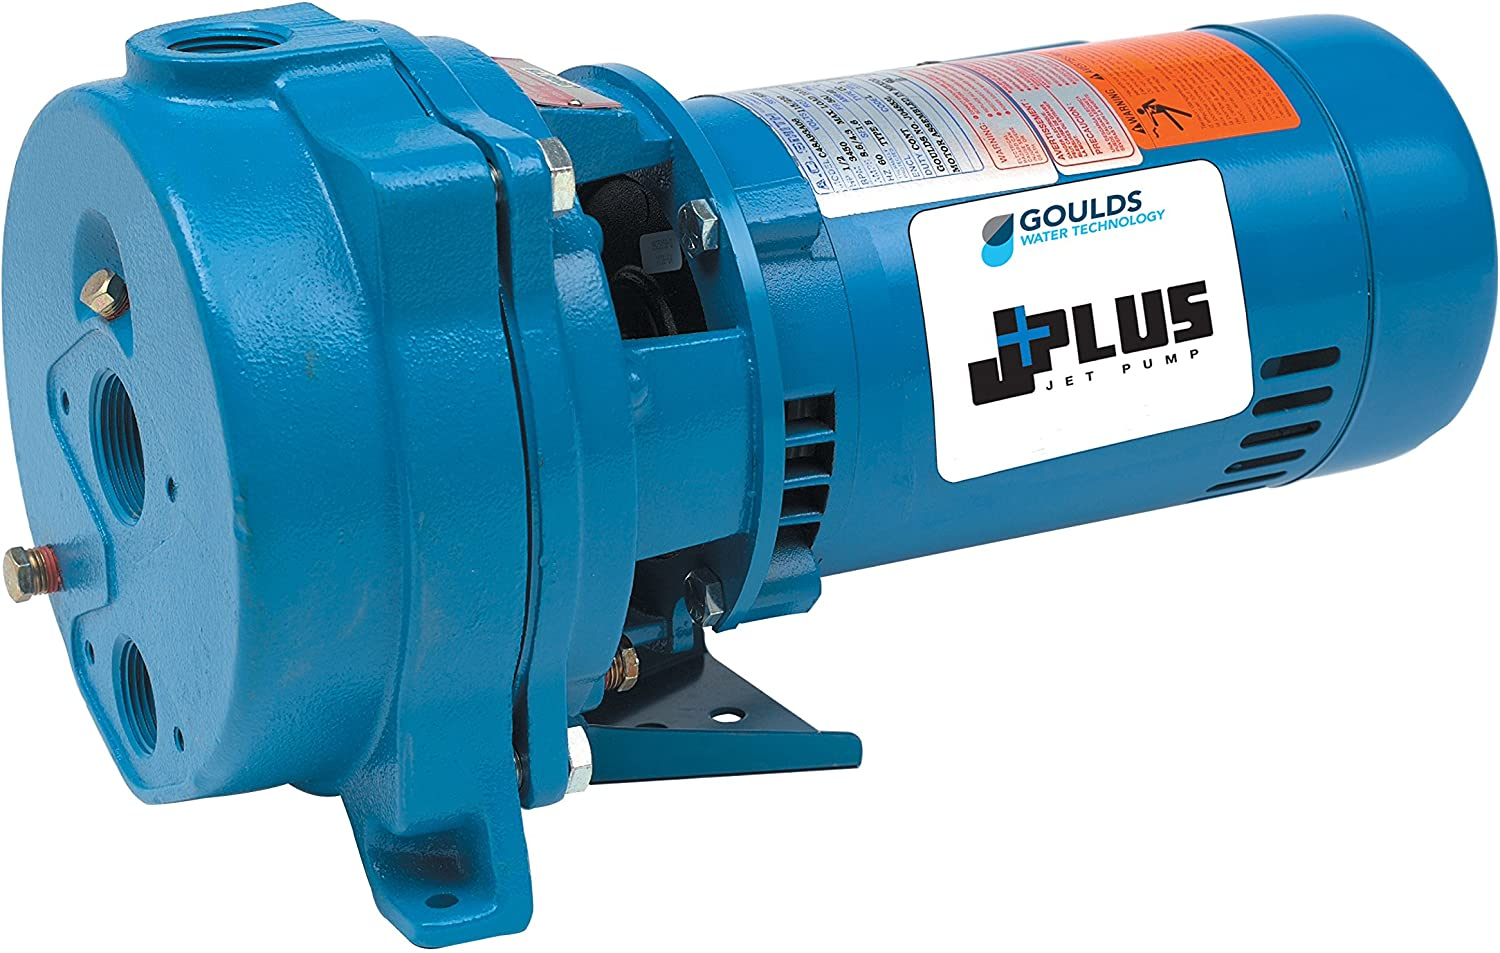 Goulds J5 Convertible Jet, Deep Well Pump - 115v/230v - 1/2 hp